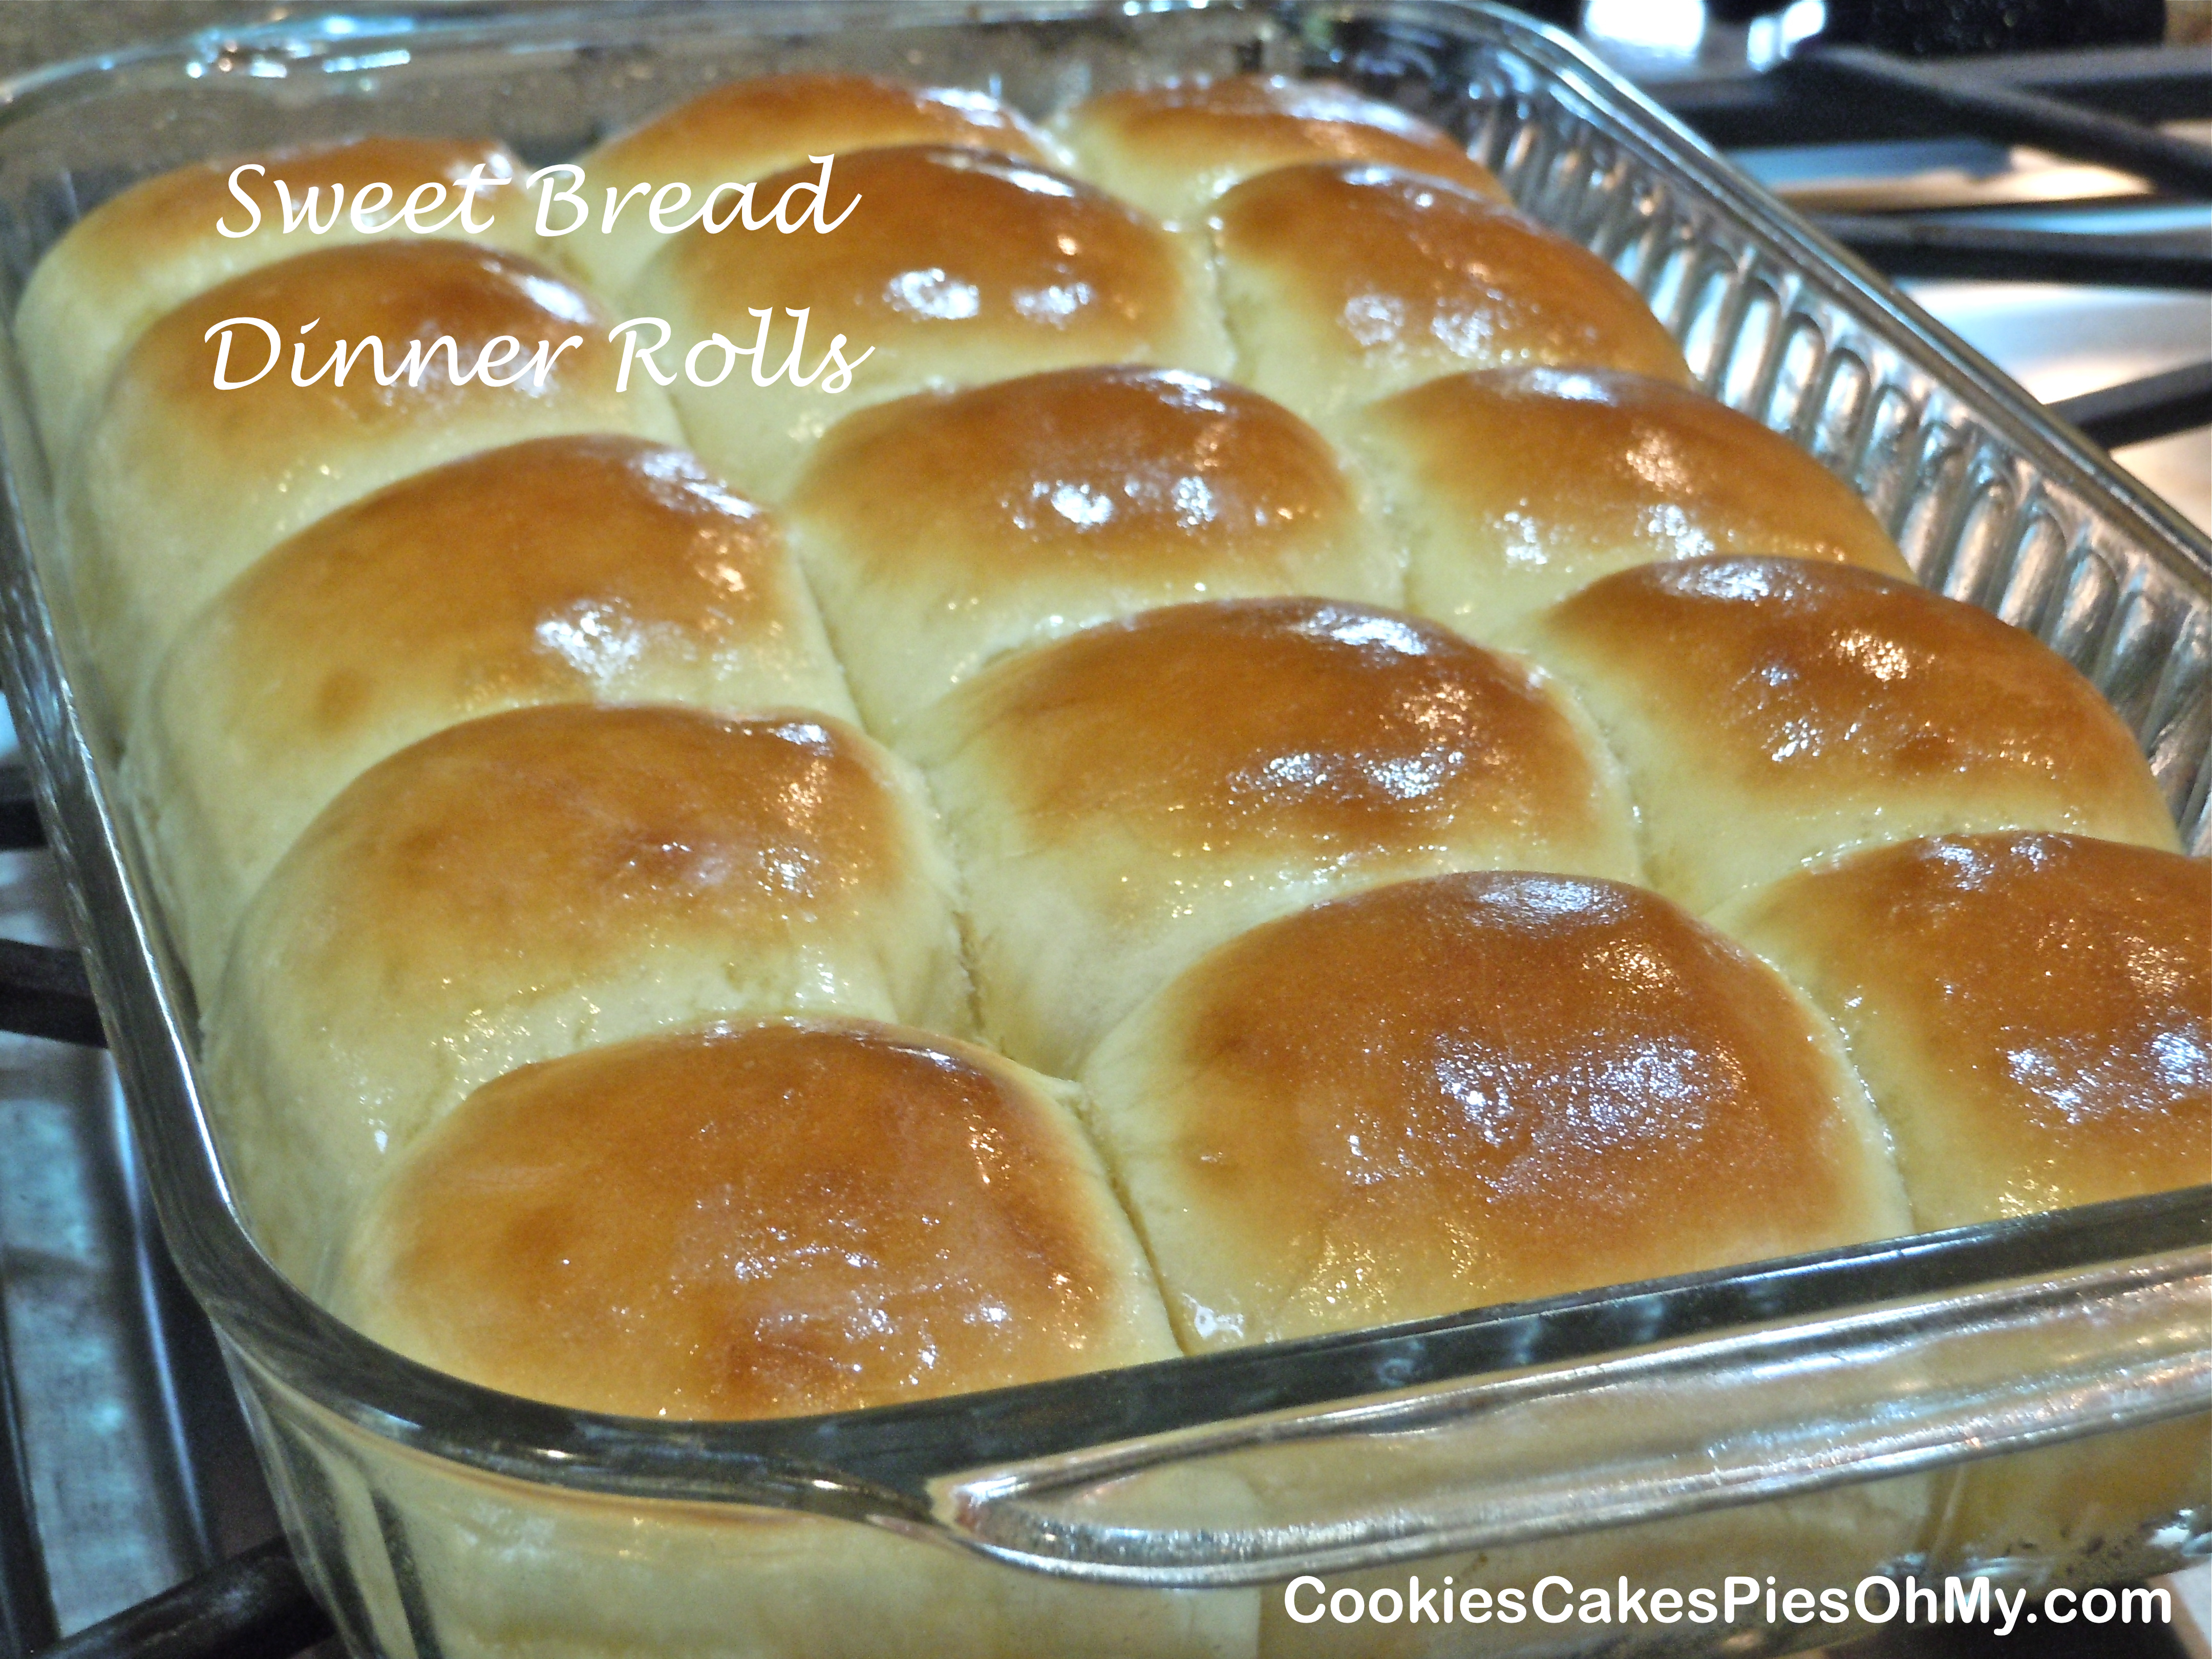 Sweet Bread Rolls | CookiesCakesPiesOhMy